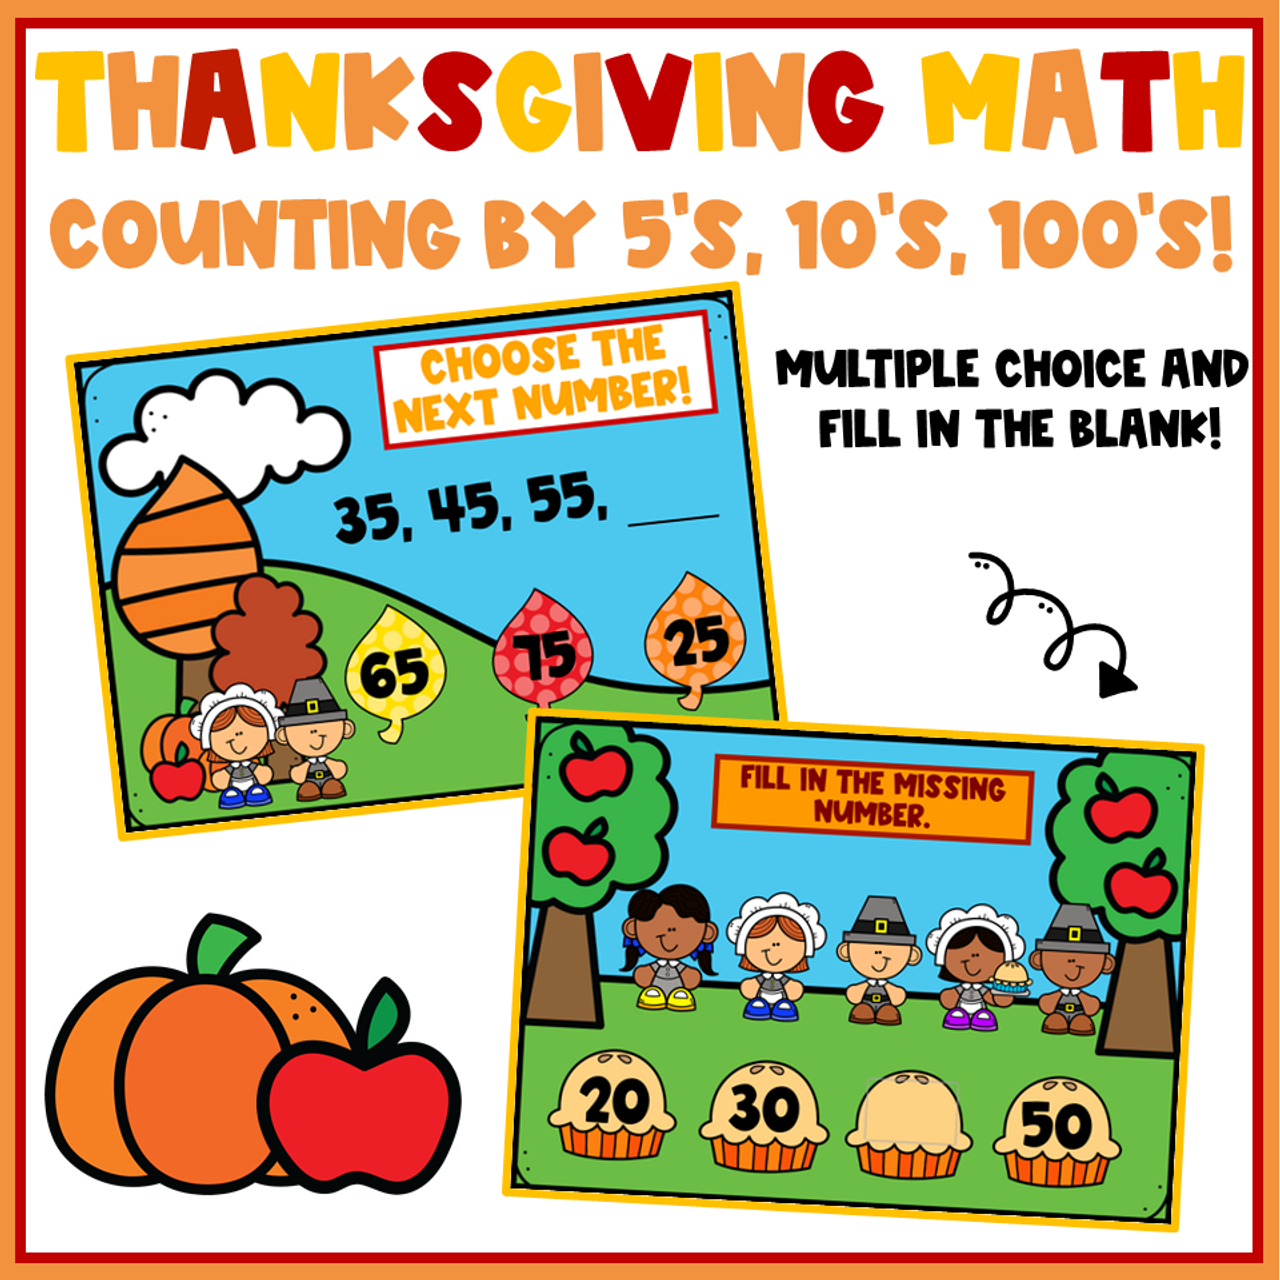 Thanksgiving Math Counting by 5's, 10's, and 100's